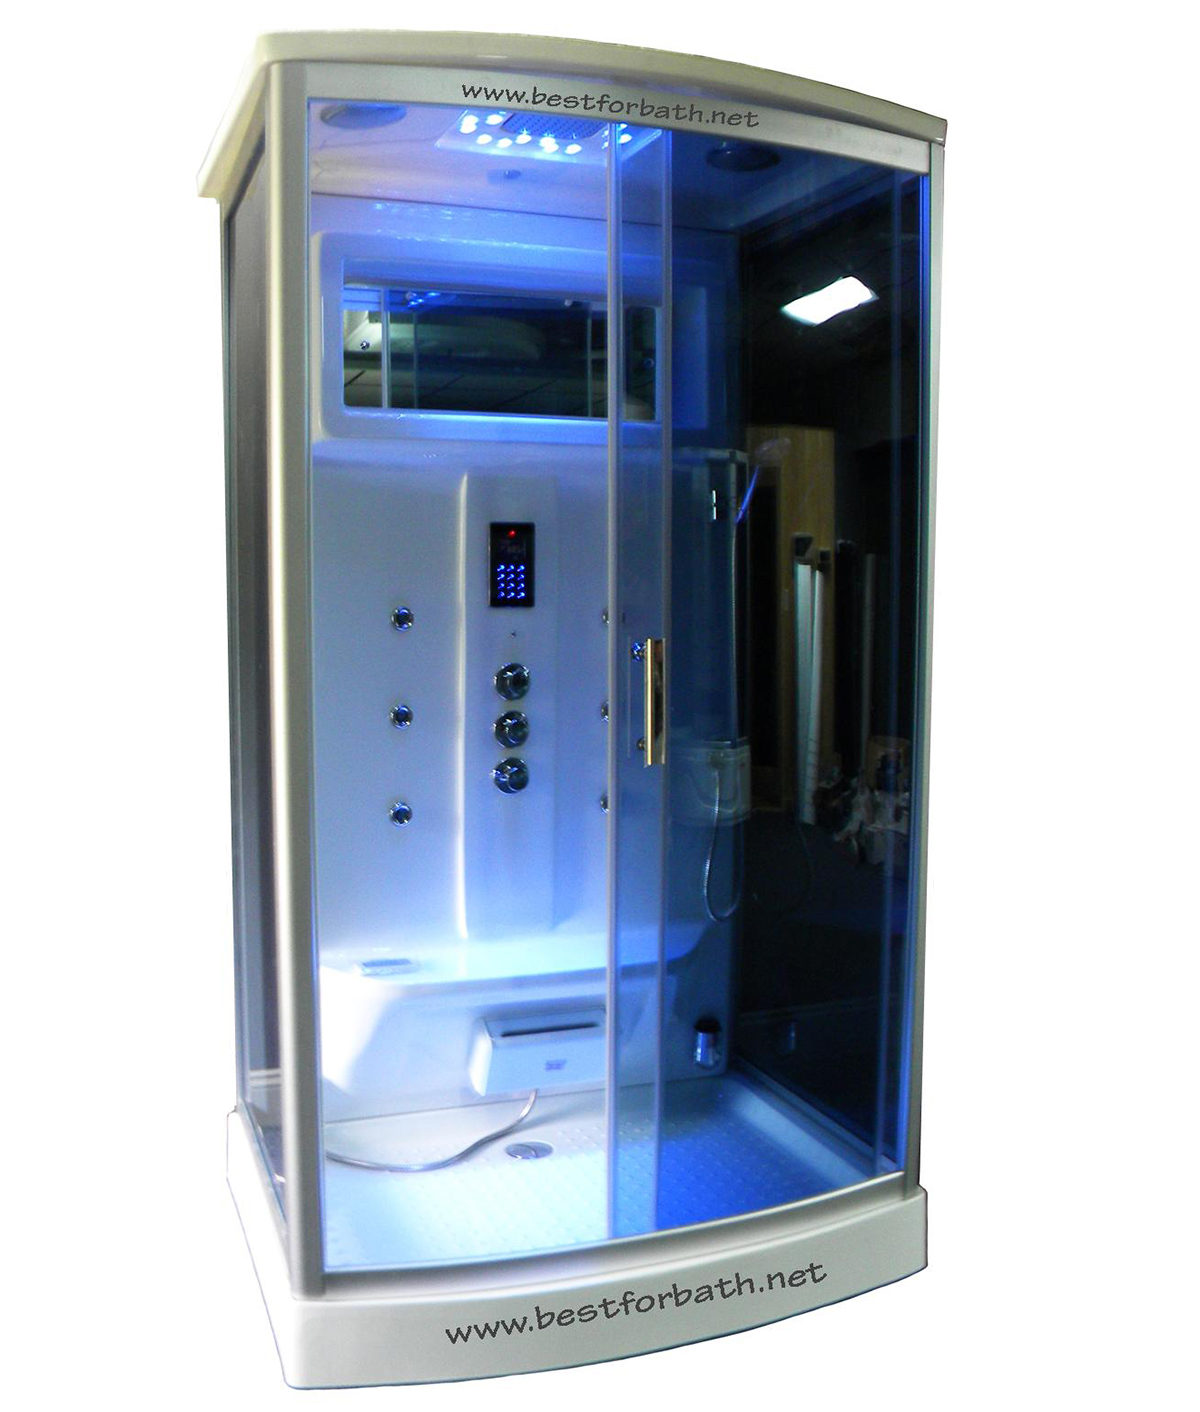 Steam Shower Room #09007.With Aromatherapy.Ozone,Termostatic .2 Days SALE